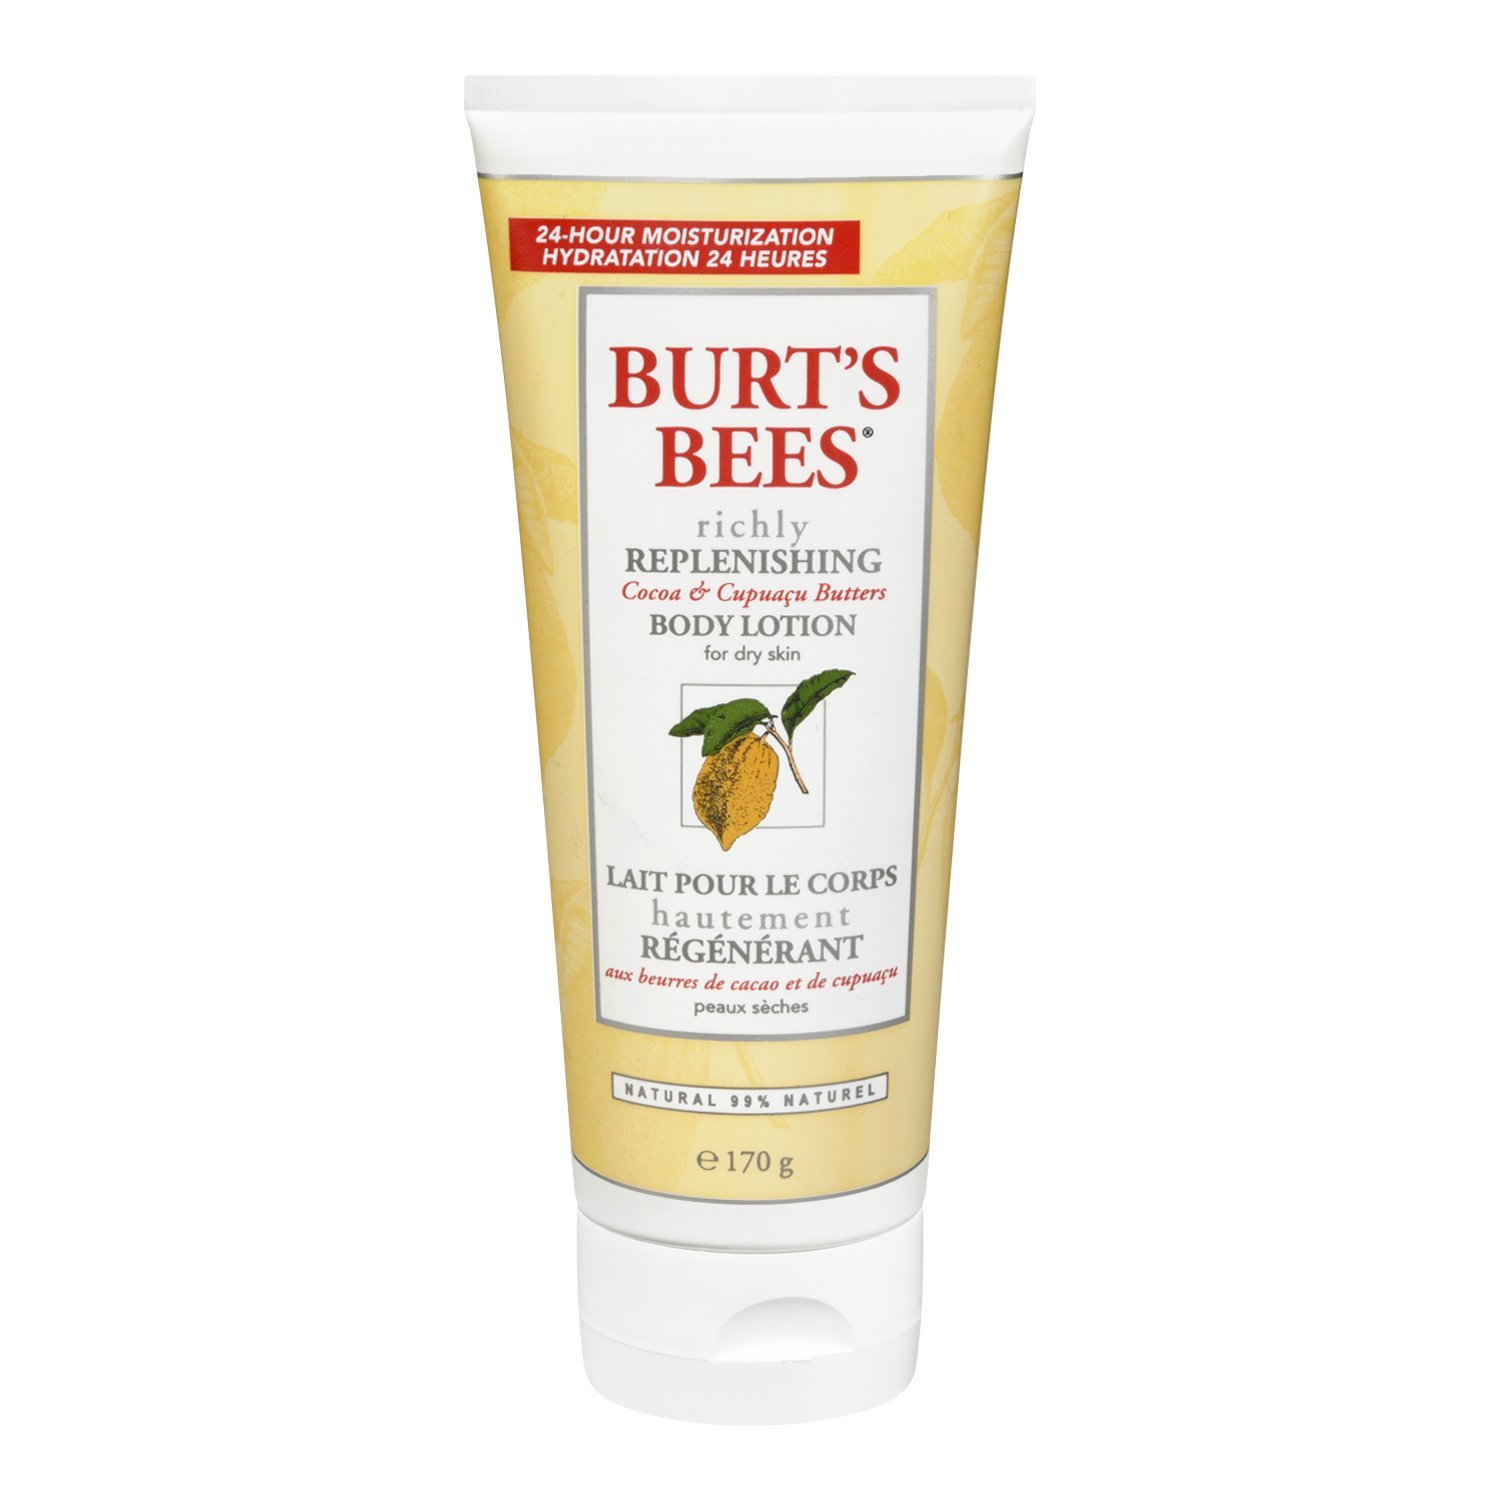 BURTS BEES Cocoa Butter Body Lotion, 6 OZ